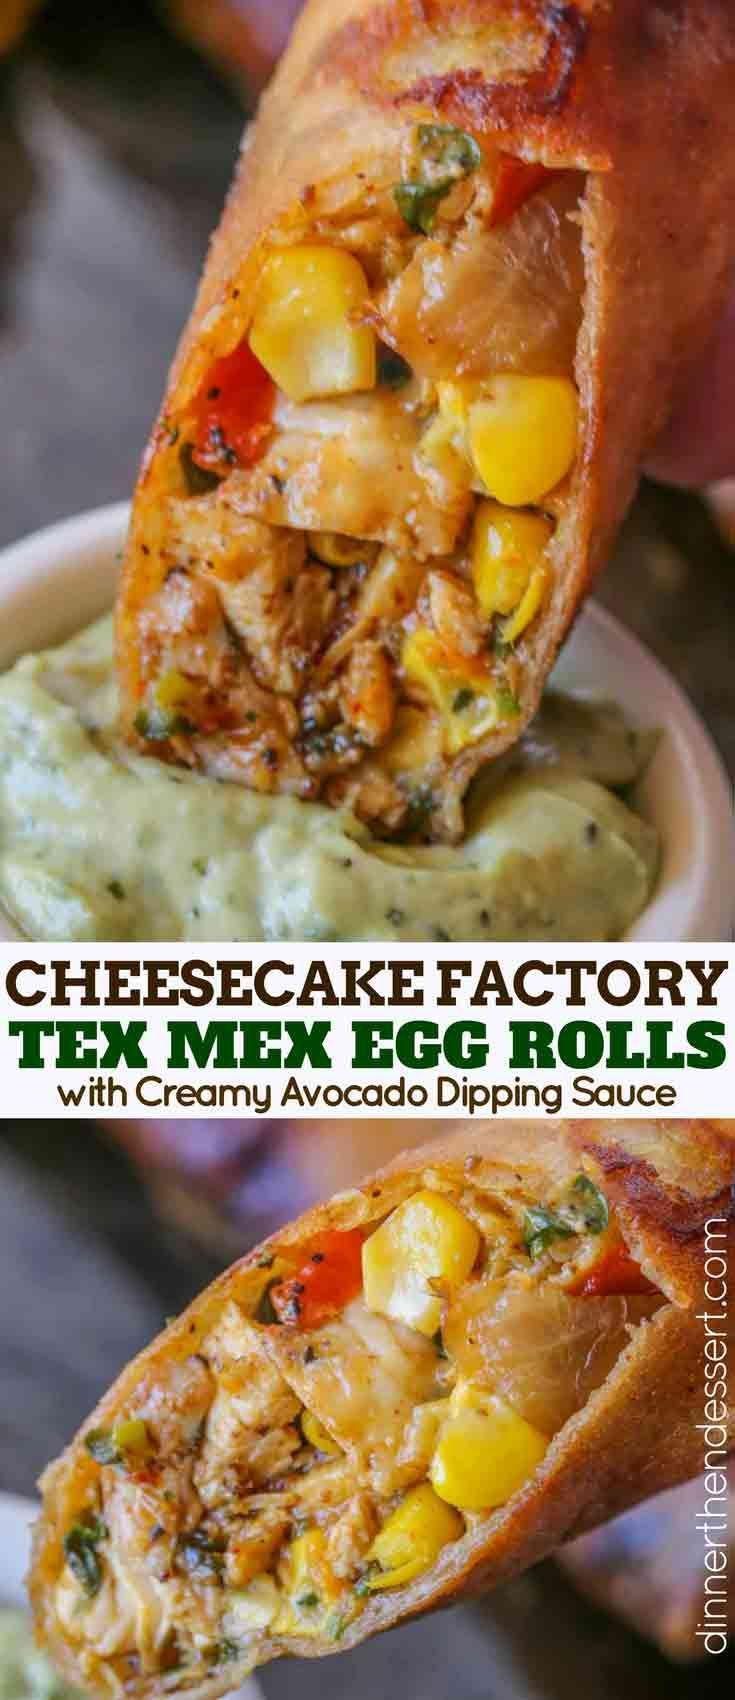 Cheesecake Factory Tex Mex Egg Rolls Copycat made with spiced chicken, beans, co... -